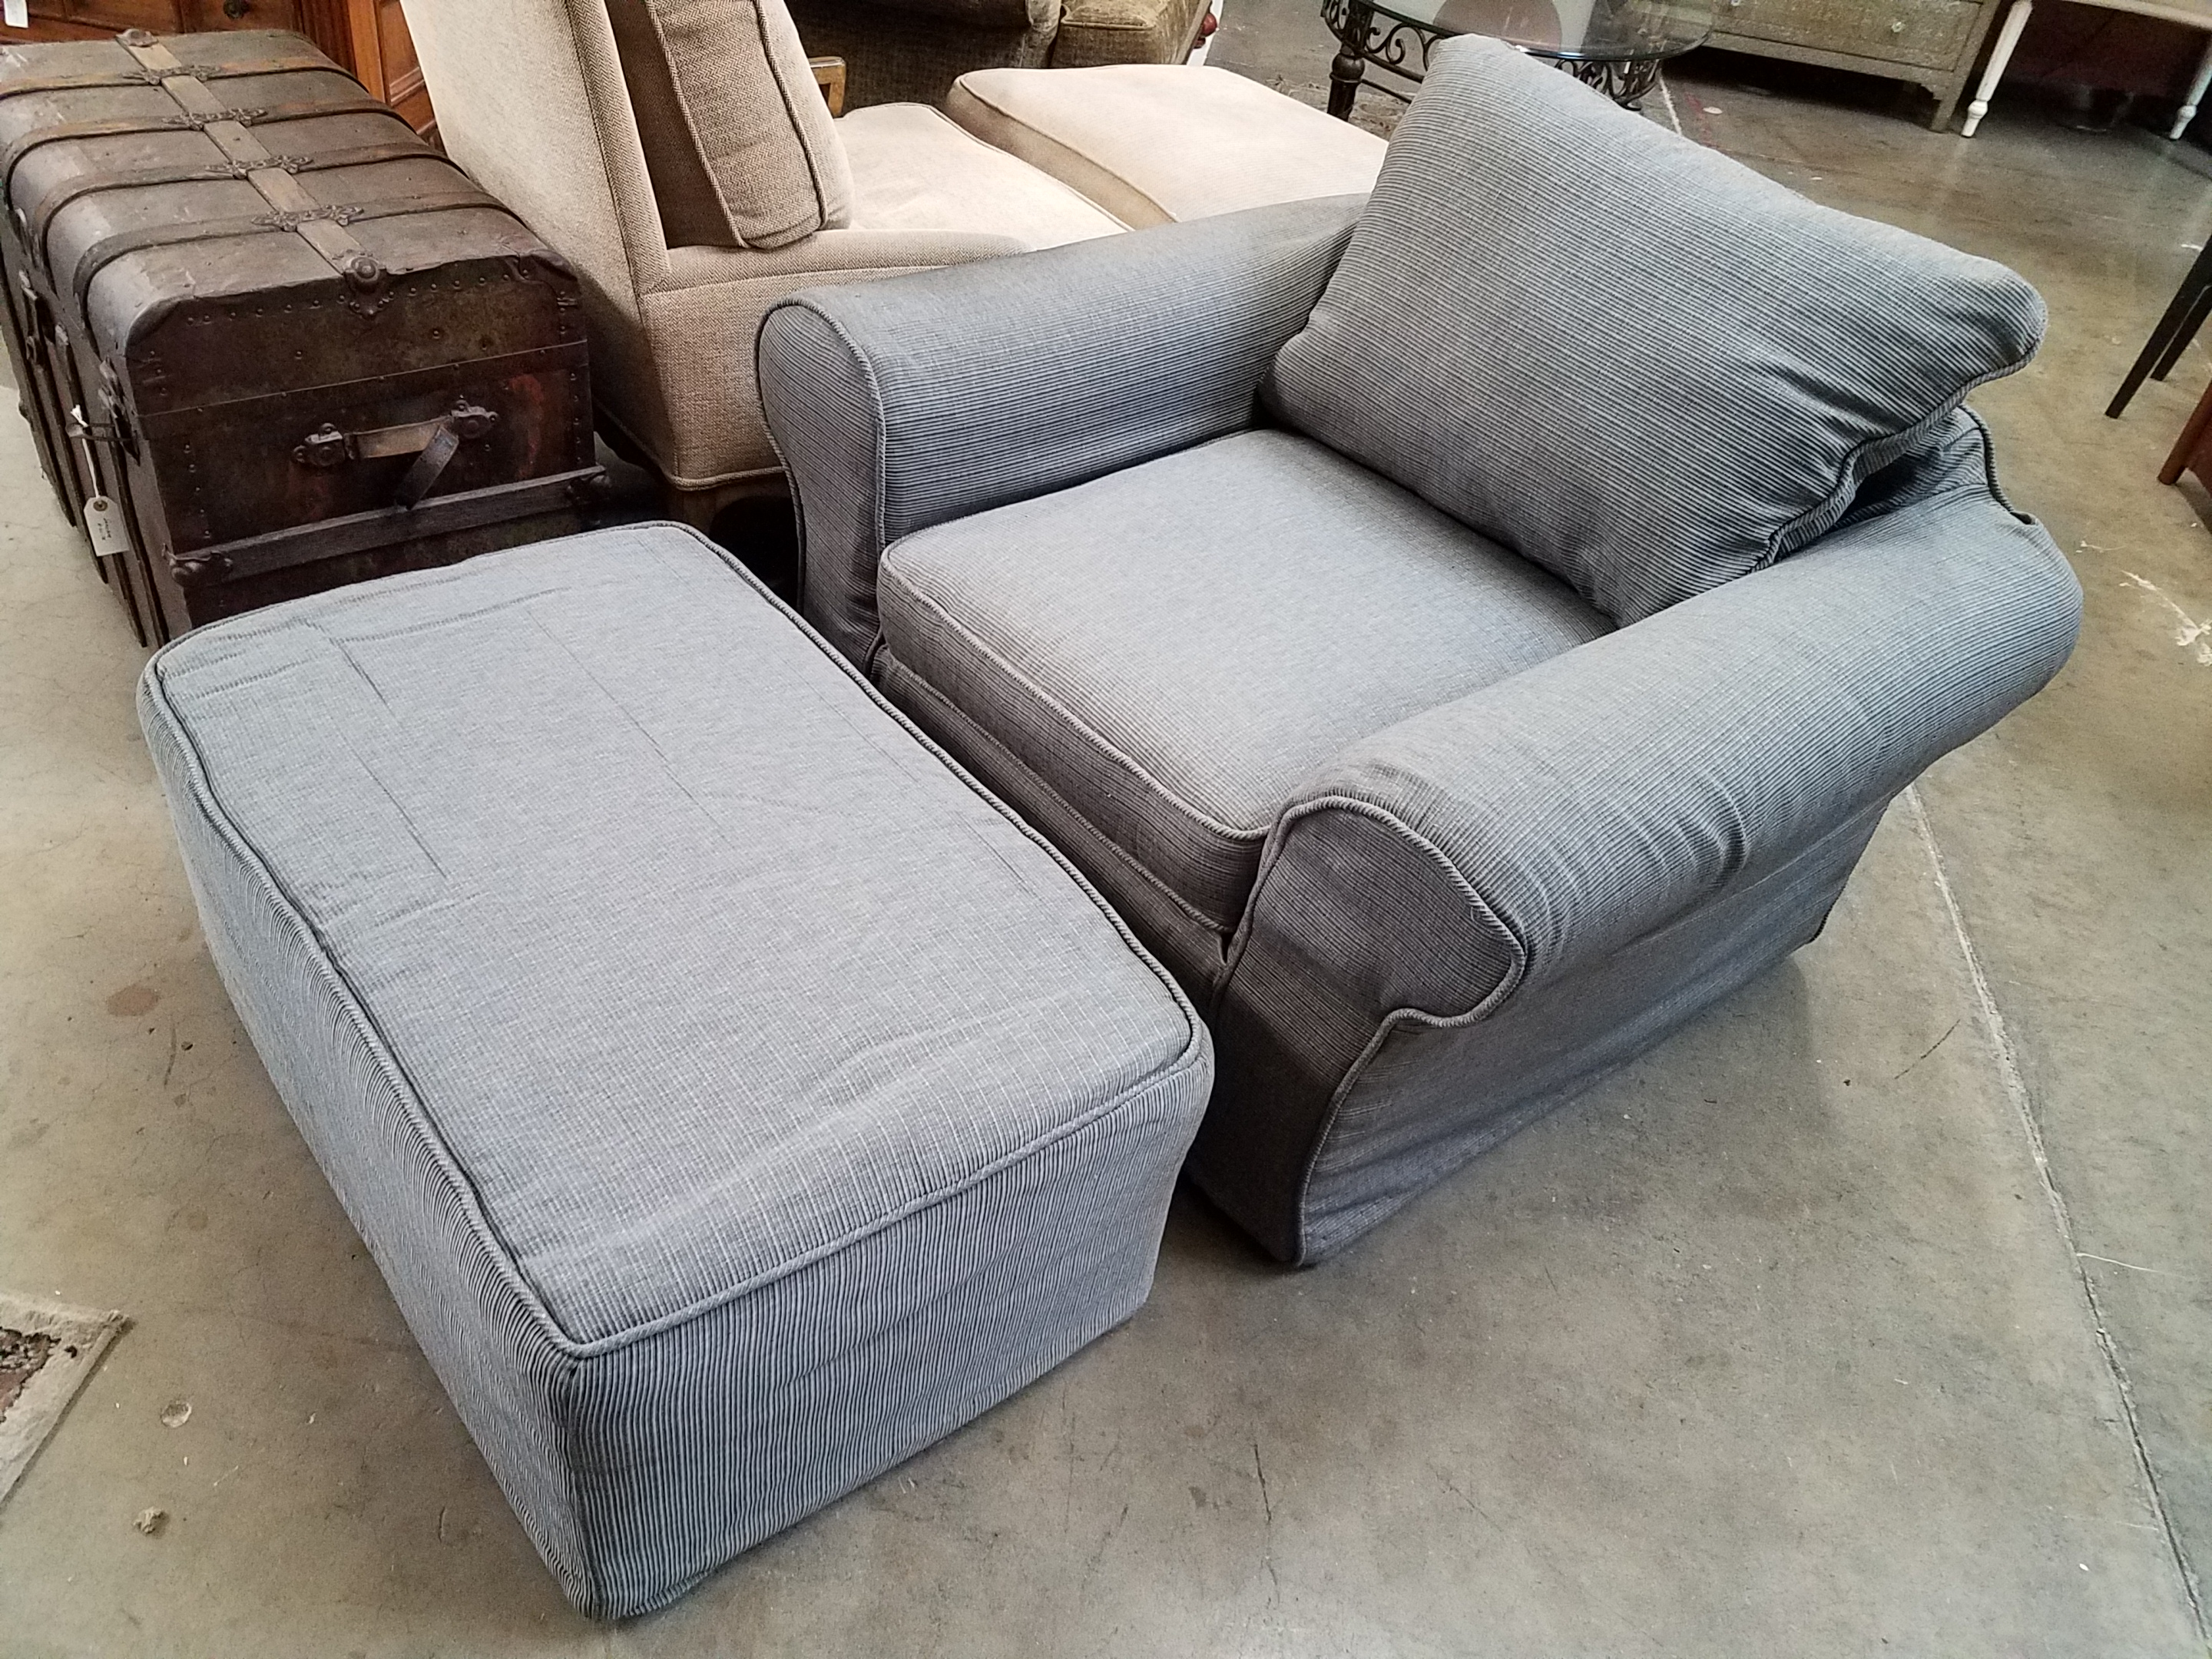 Gray Upholstered Lounge Chair And Ottoman